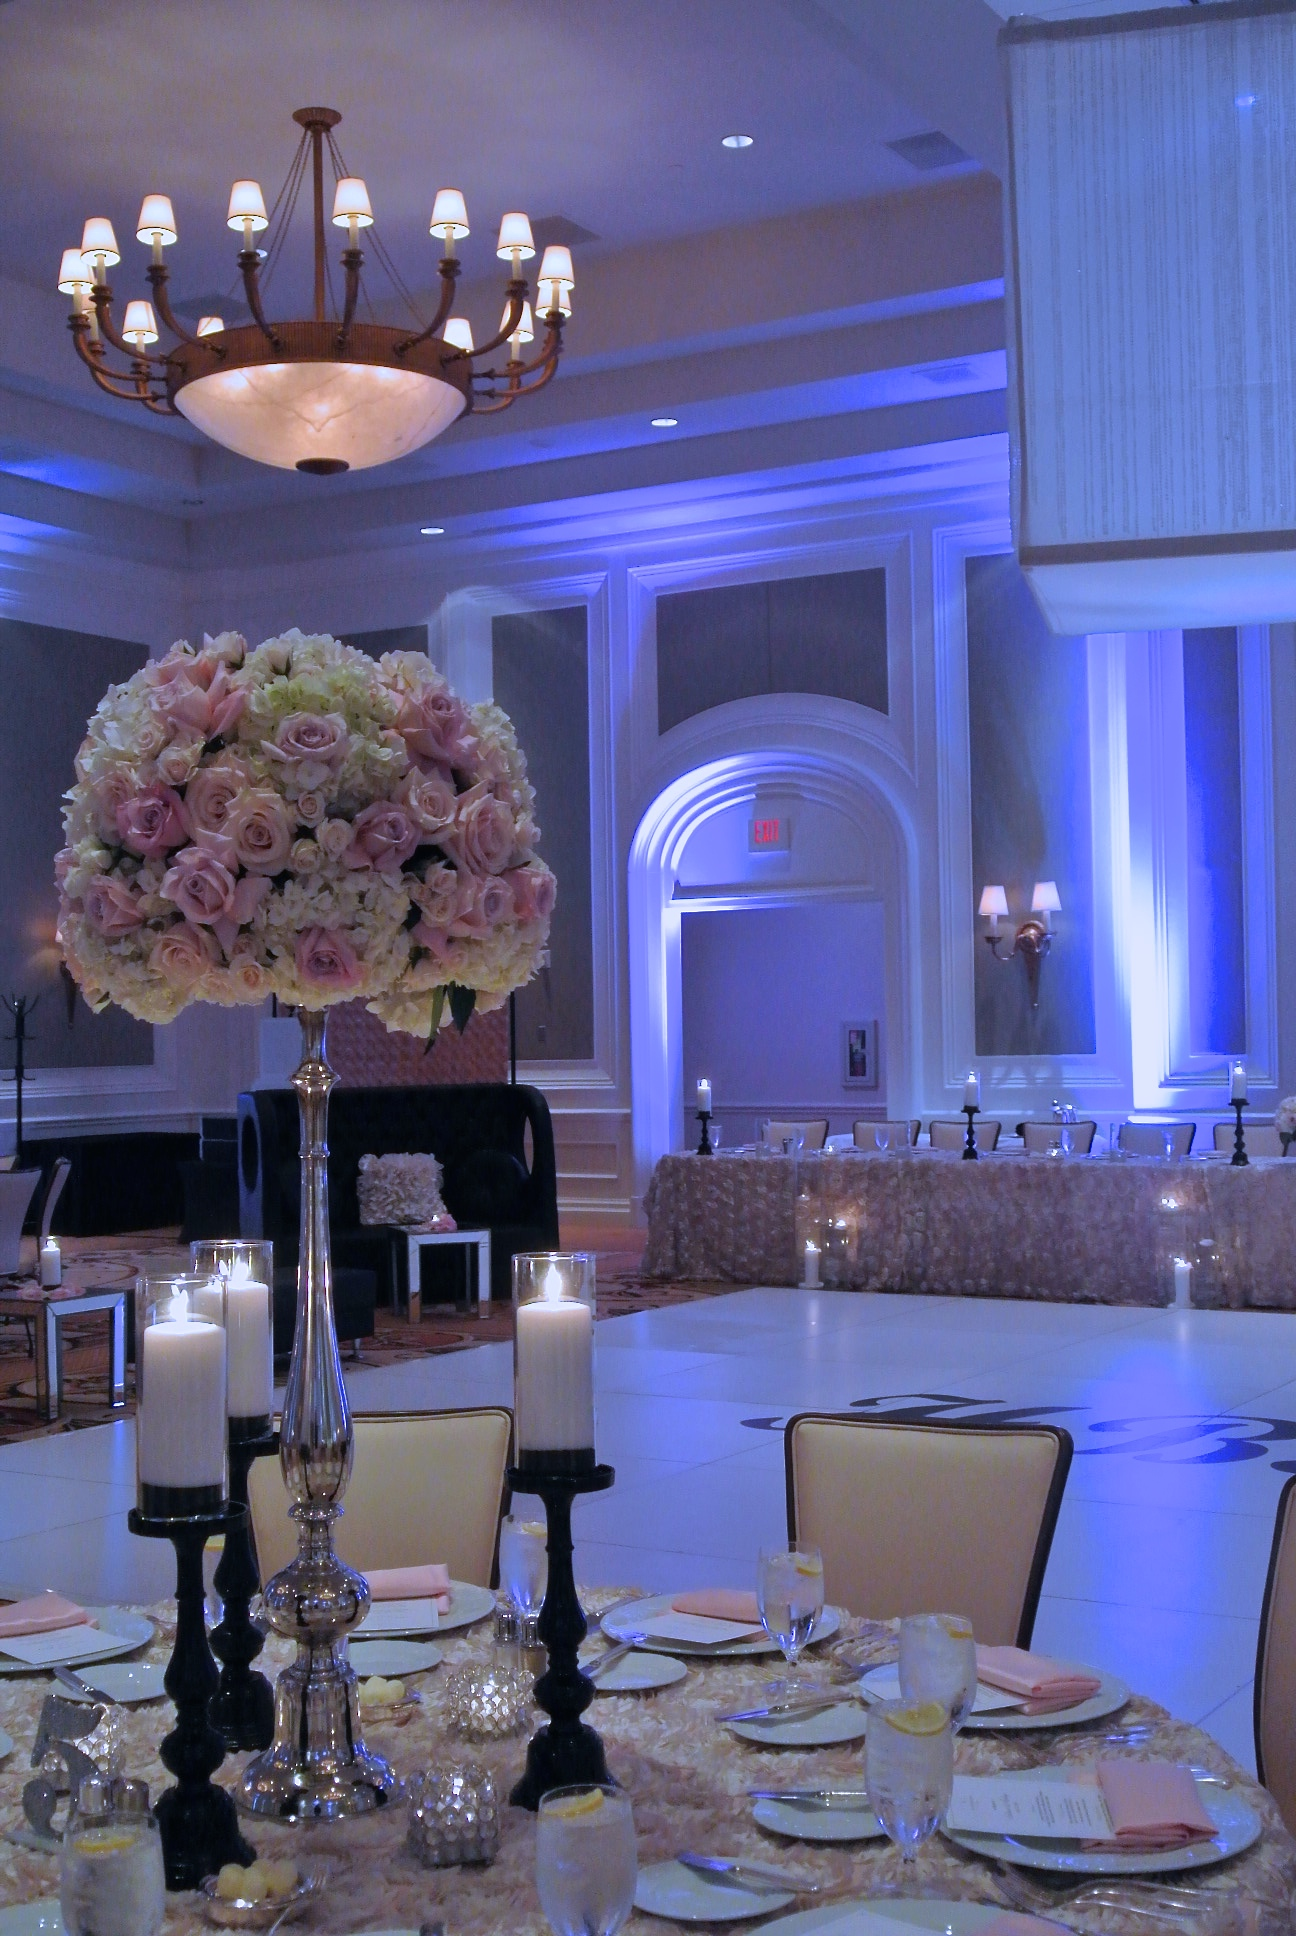 The second table scape design featured tall centerpieces on rosette linens, with back candles and smaller crystal votive holders. The long head table in the background shared the same linen and candle design elements. Naakiti Floral and Sit On This also provided the white dance floor, black monogram, and the crystal light box.